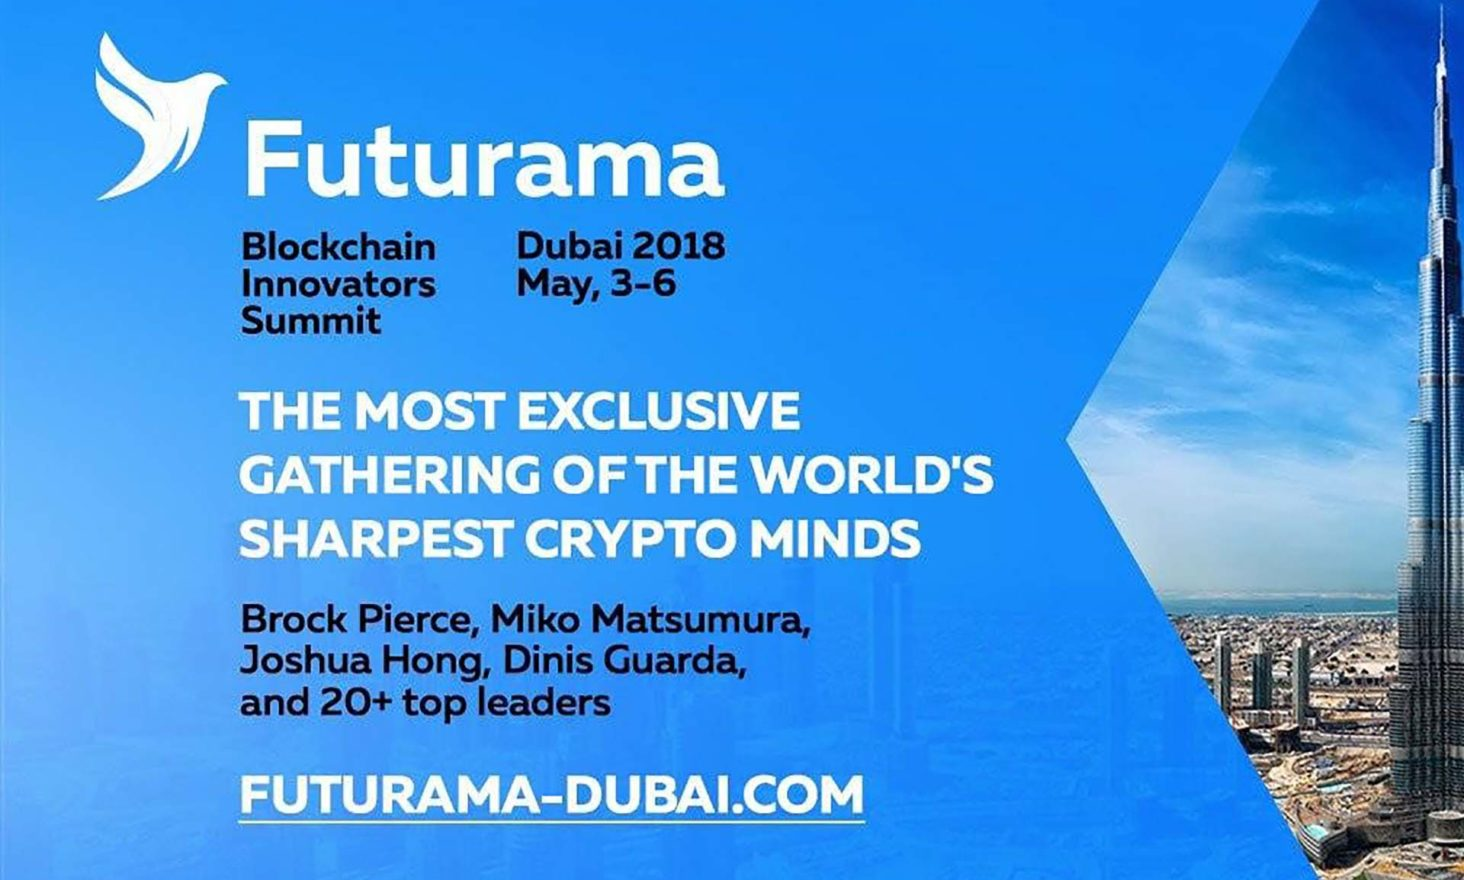 Brock Pierce and 25+ Crypto Whales in the Most Expected Coinsbank Event of the Year